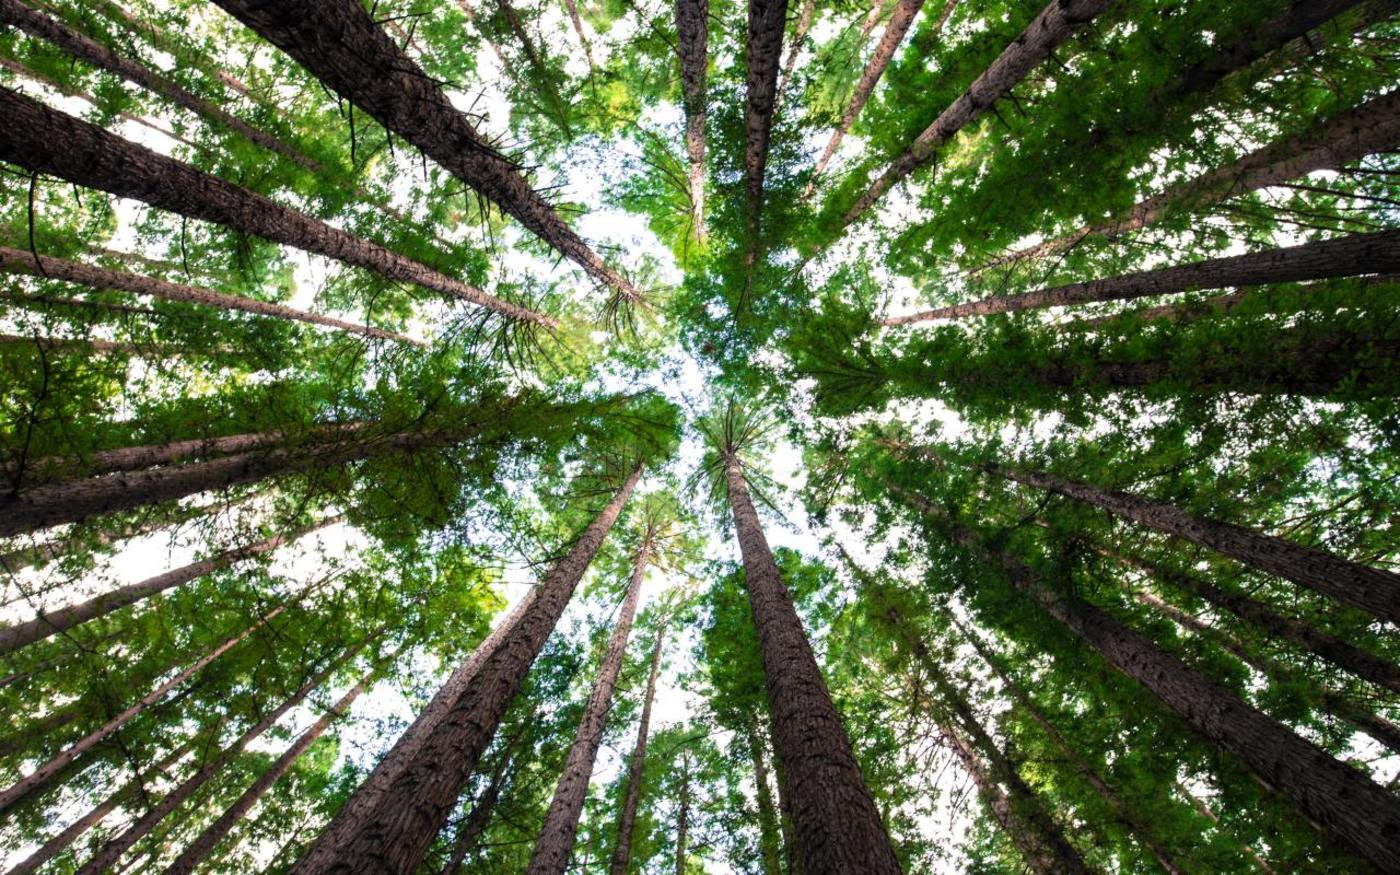 In the centre of a circle of tall trees looking up at the canopy